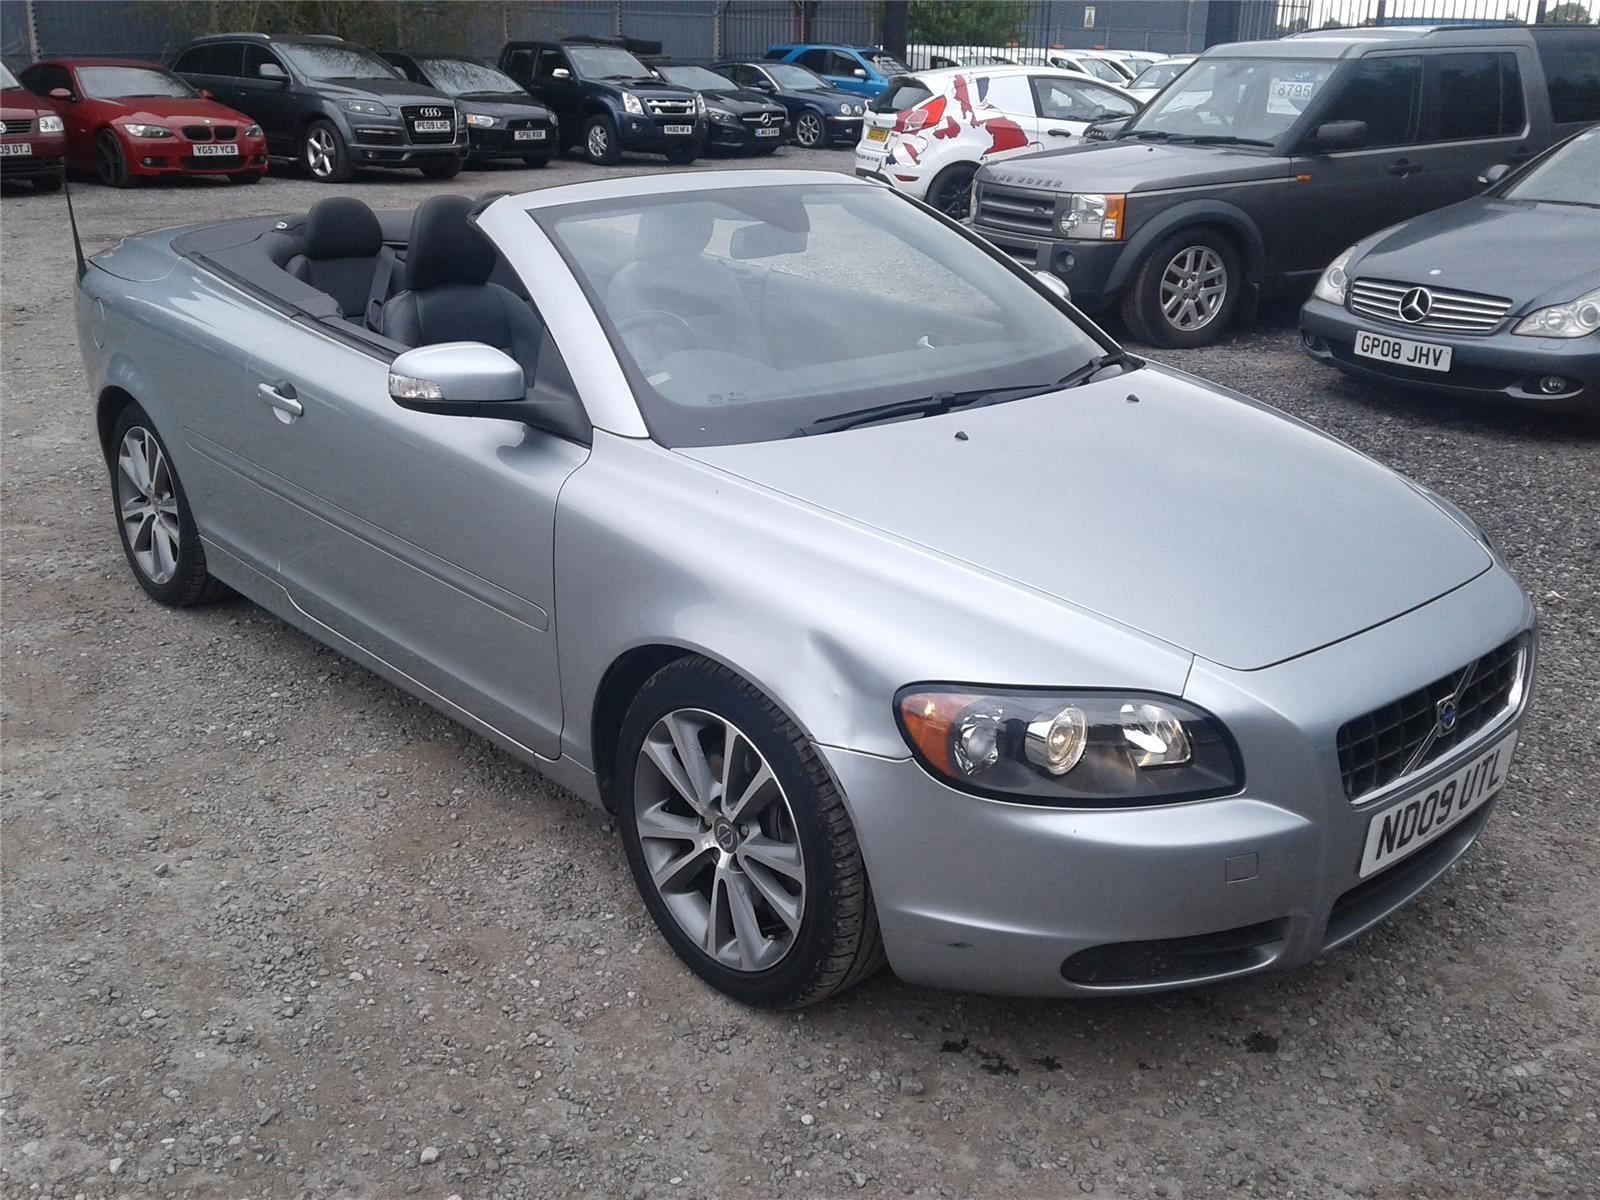 hight resolution of 2009 volvo c70 se 2400 diesel manual 6 speed 2 door cabriolet